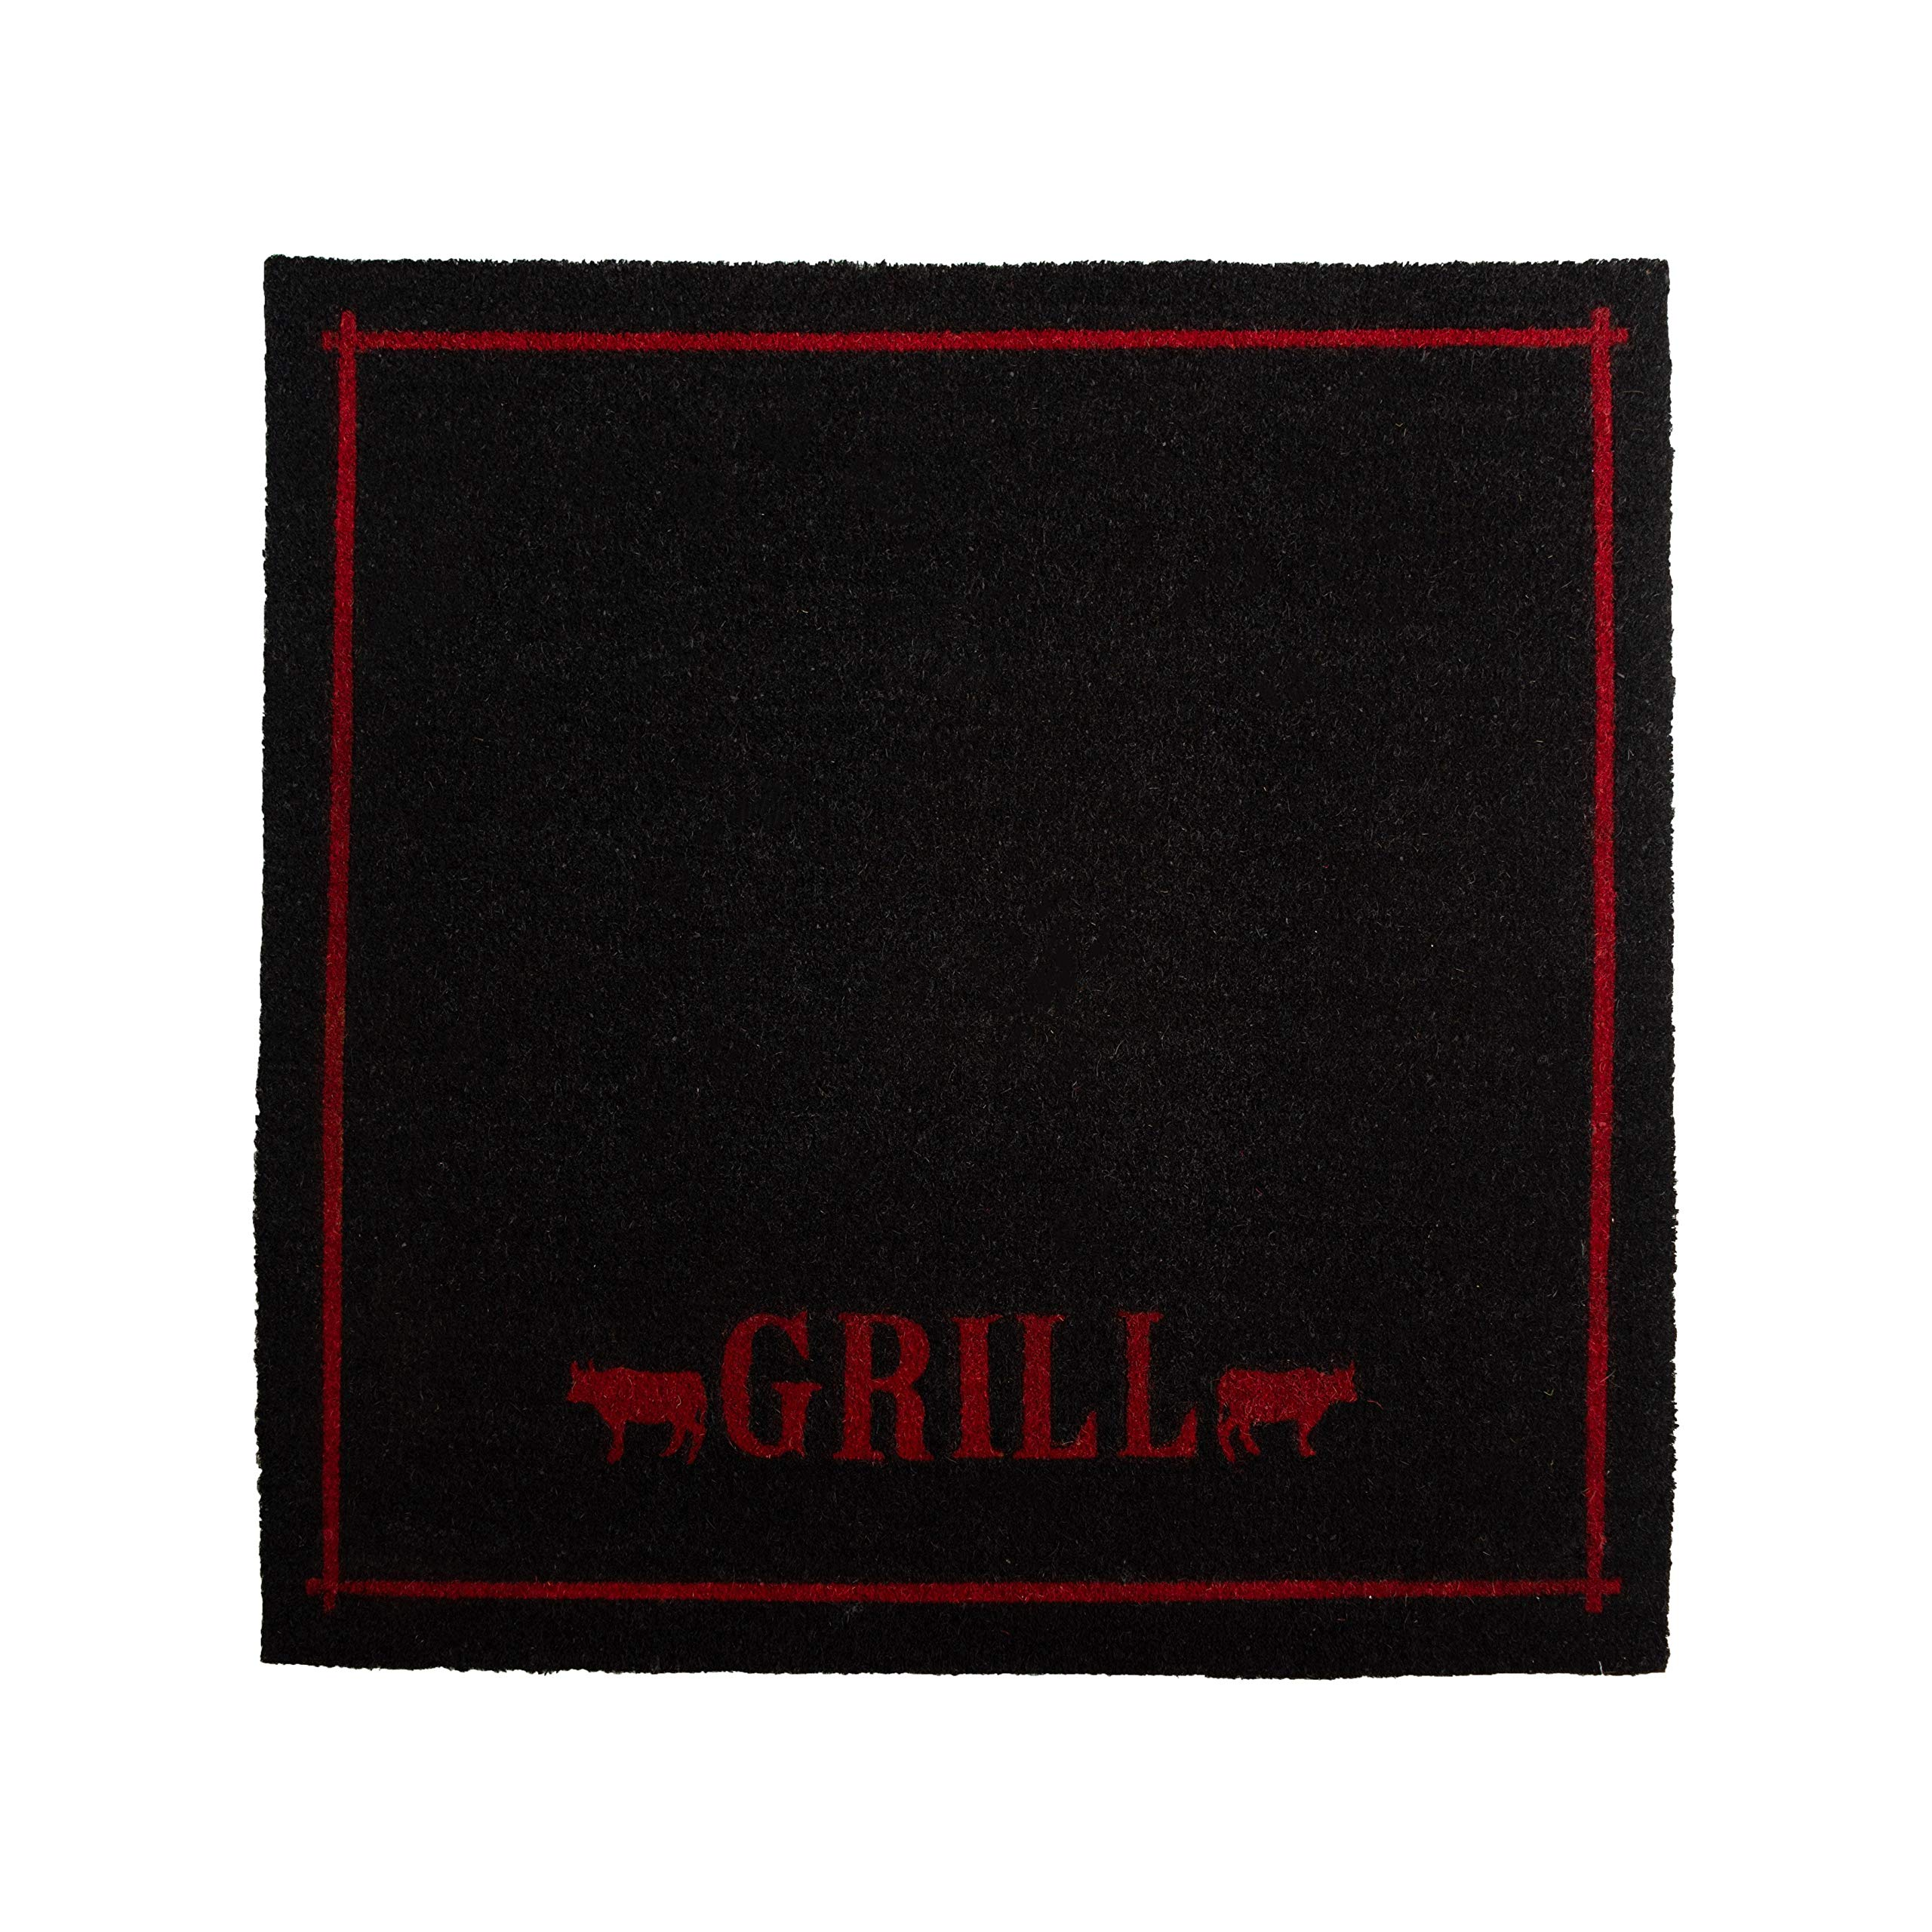 Calloway Mills 120884646 Outdoor Grill Mat, 46'' x 46'', Red/Black by Calloway Mills